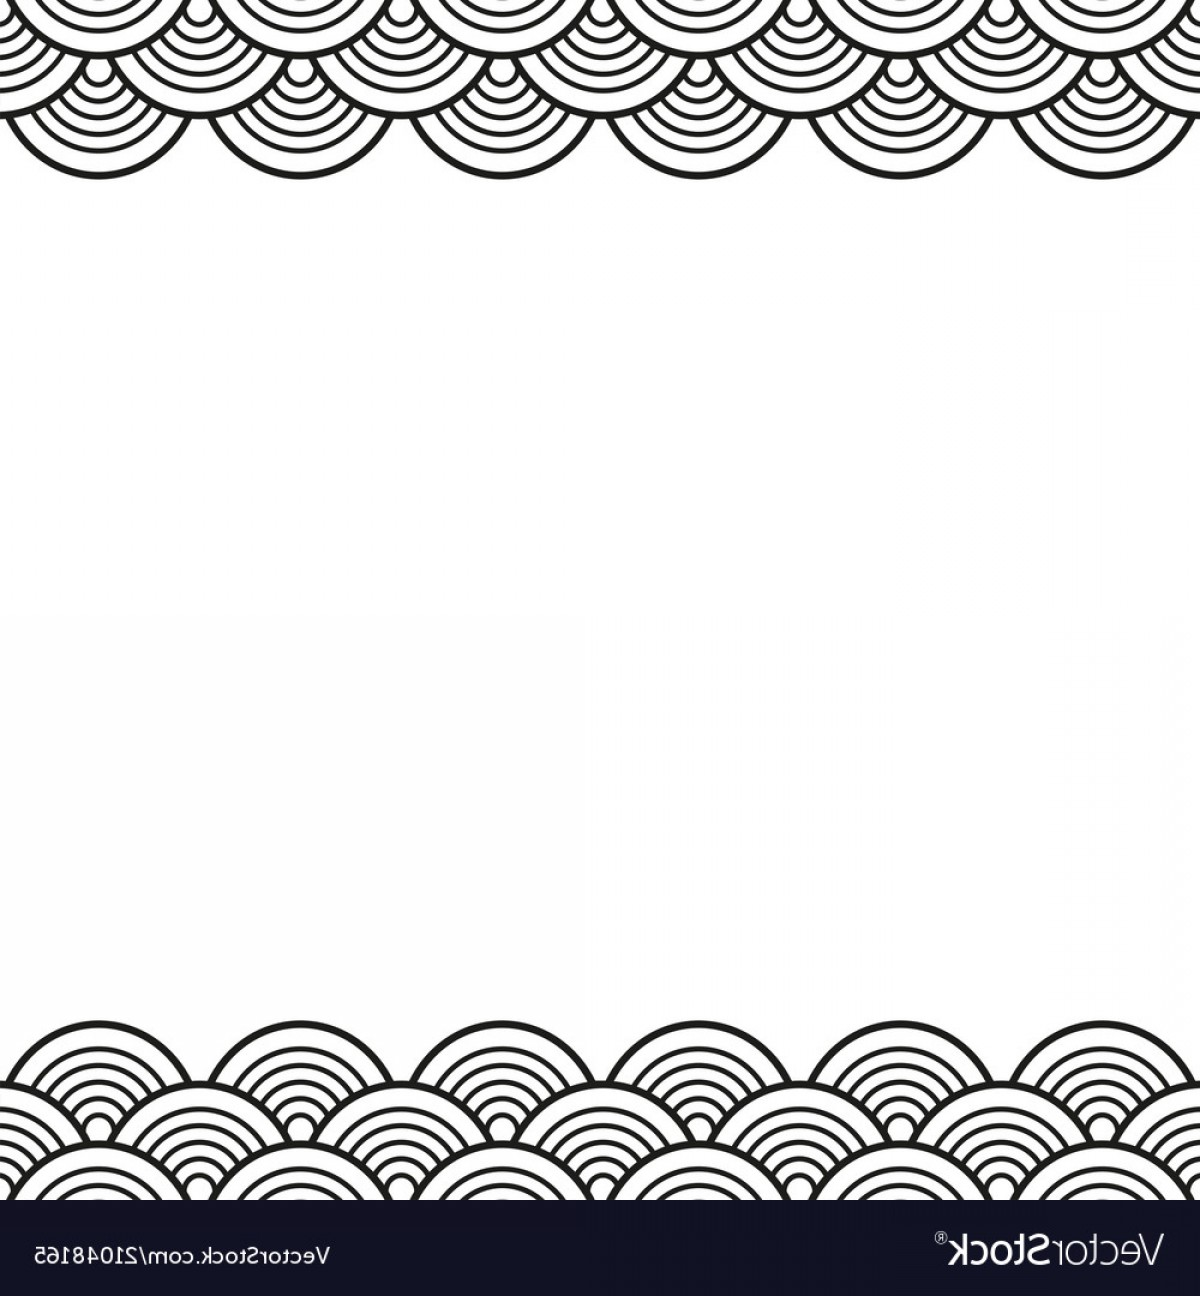 Black Scalloped Border Vector: Black Traditional Wave Japanese Chinese Border Vector